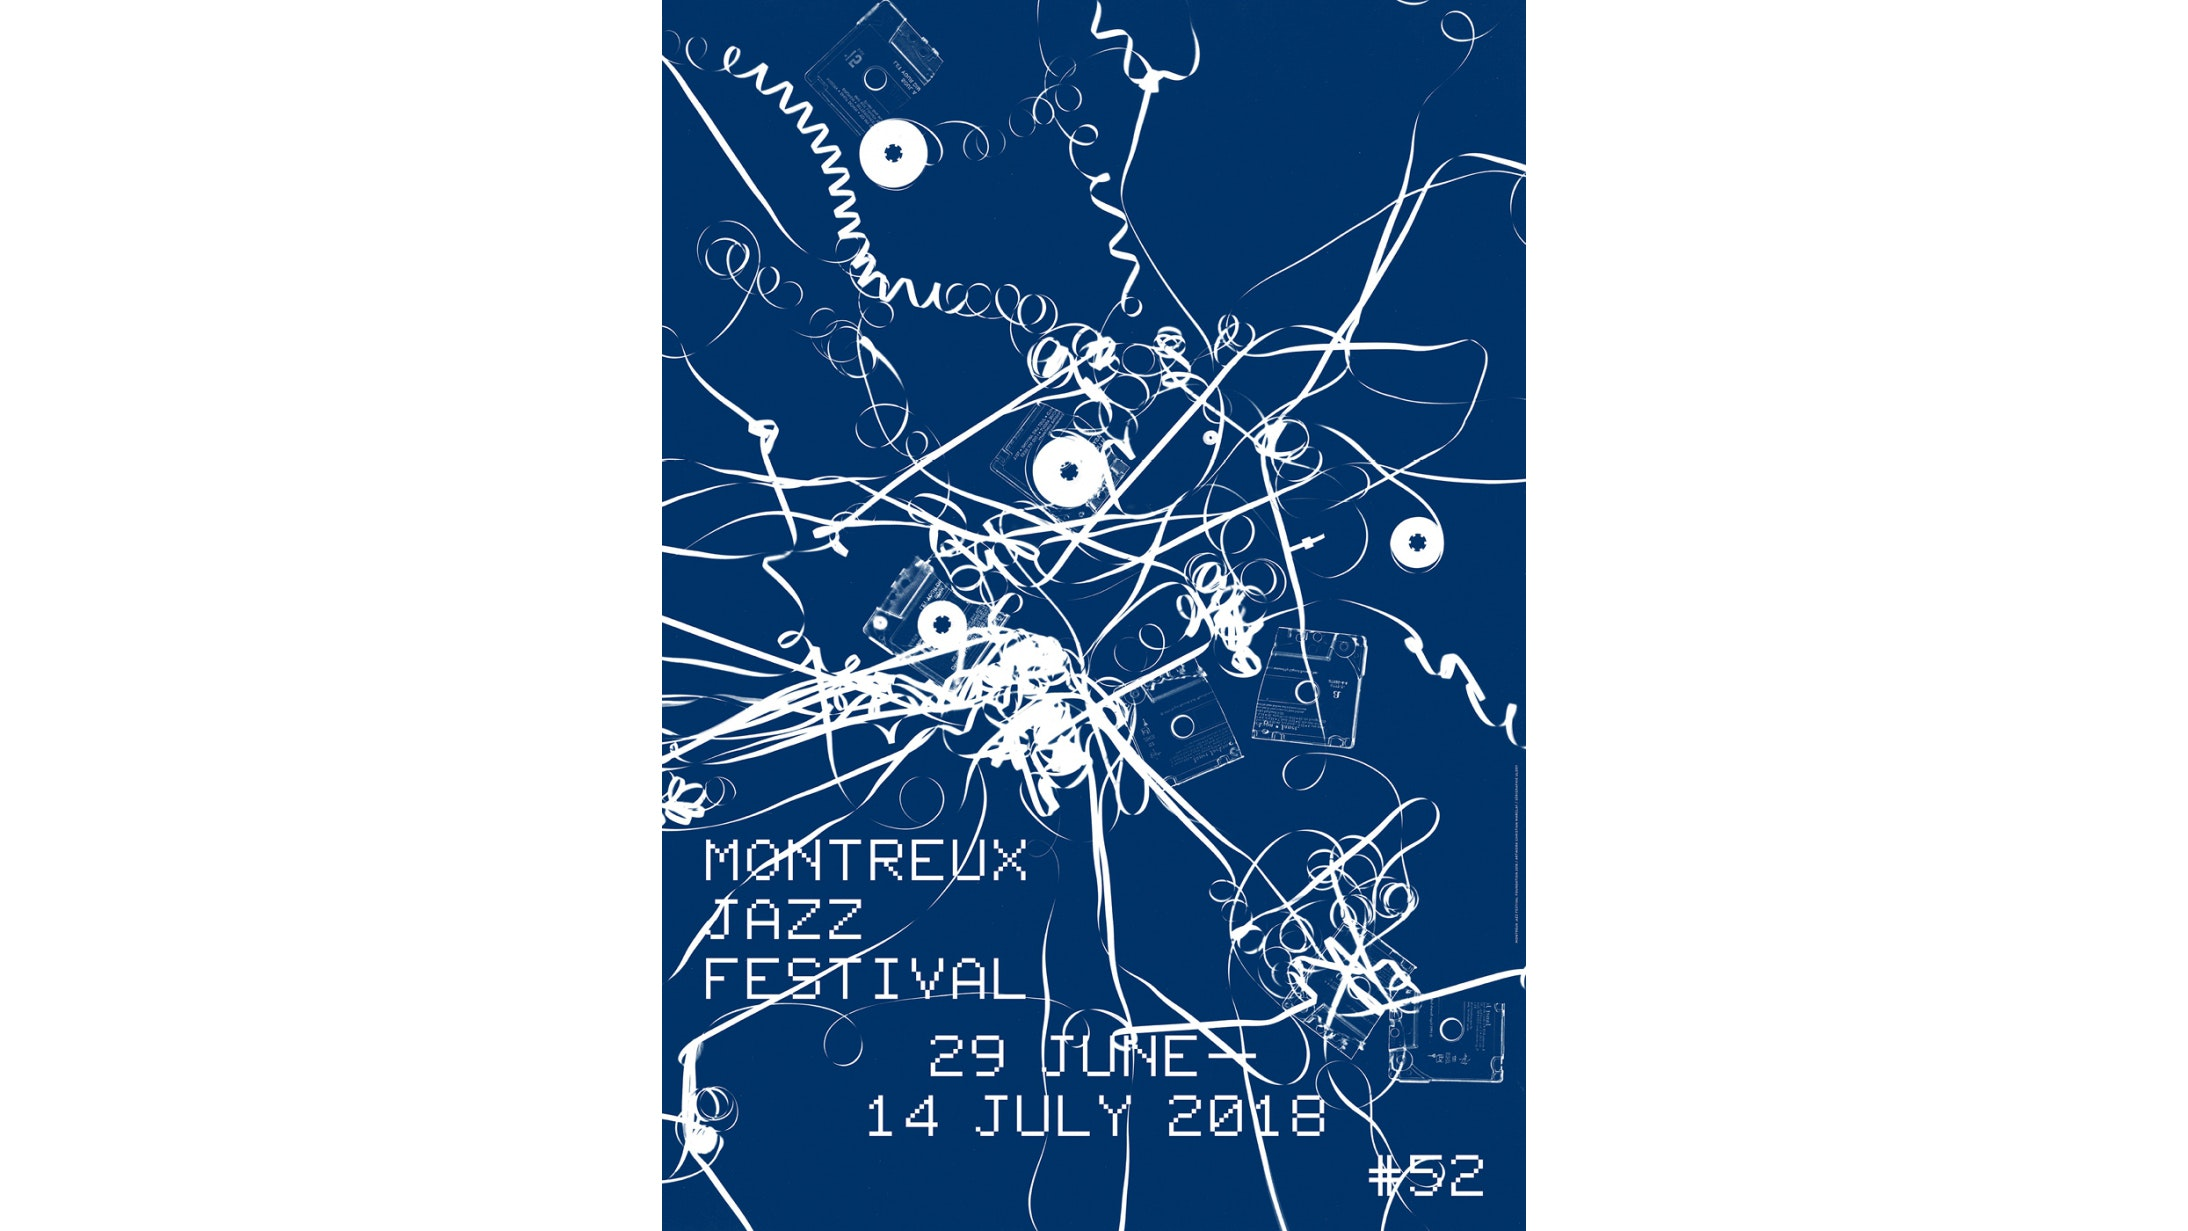 The 2018 Montreux Jazz Festival poster, designed by Swiss artist Christian Marclay